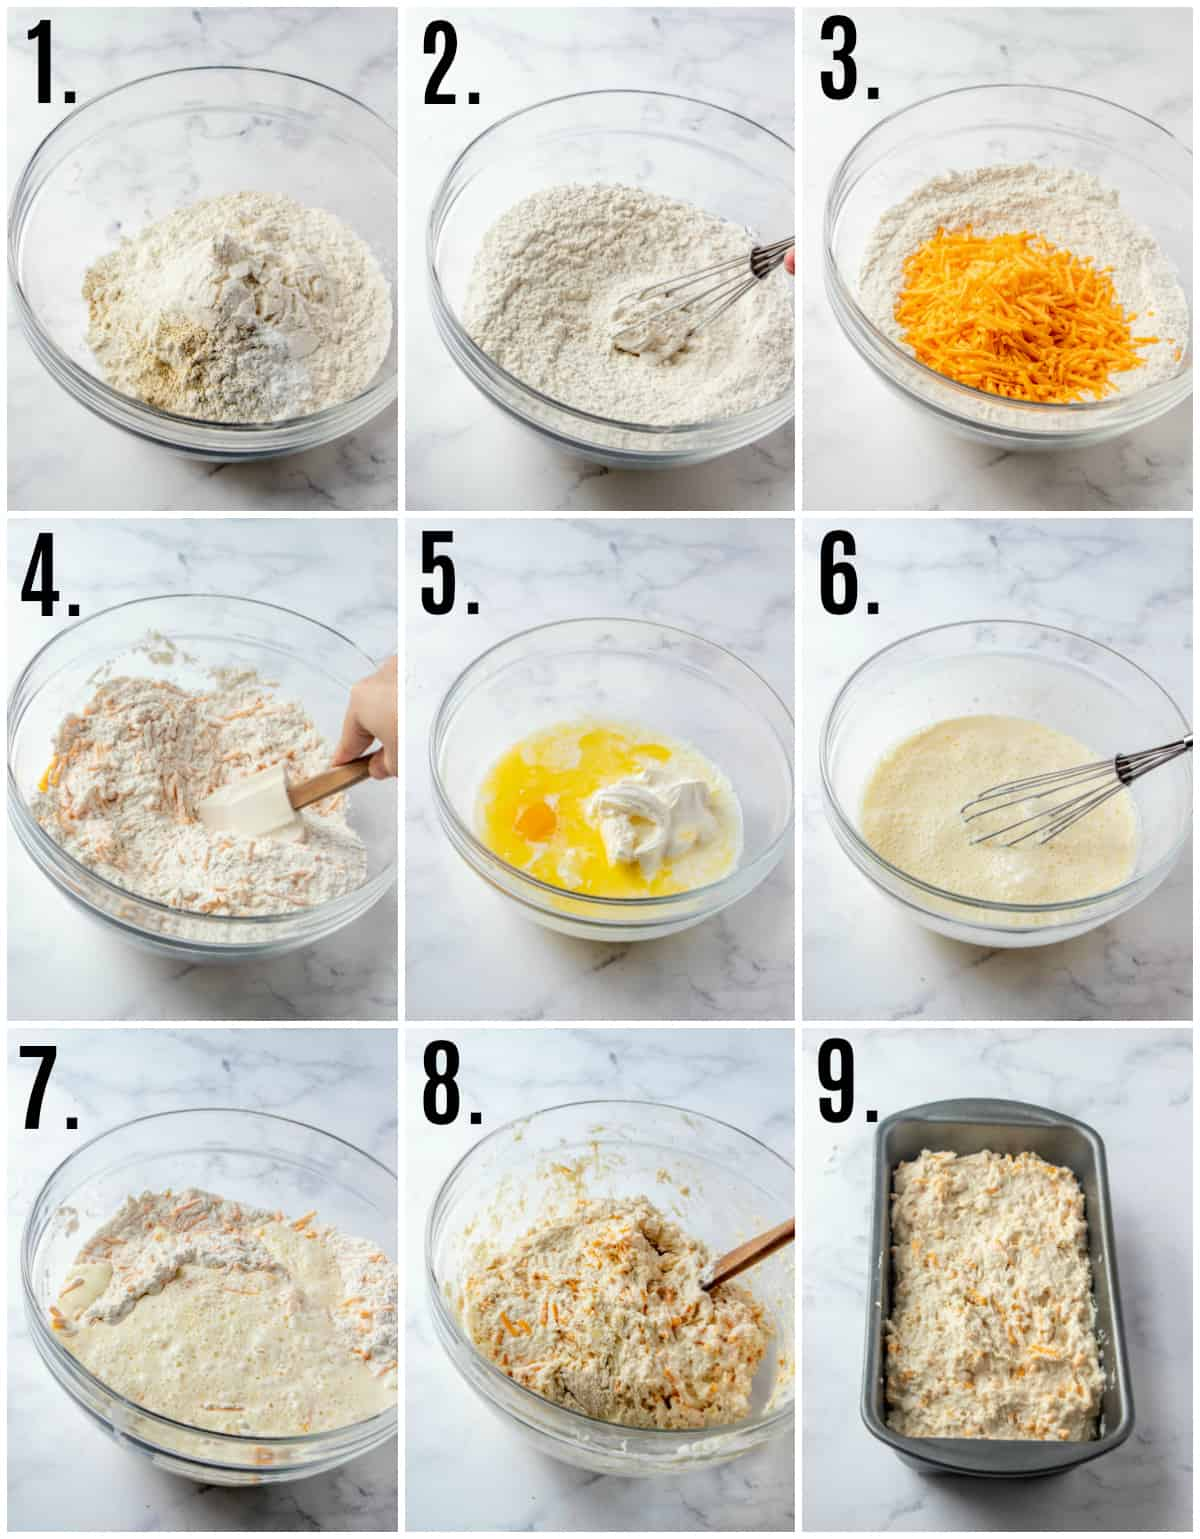 Step by step photos on how to make Easy Cheddar Bread